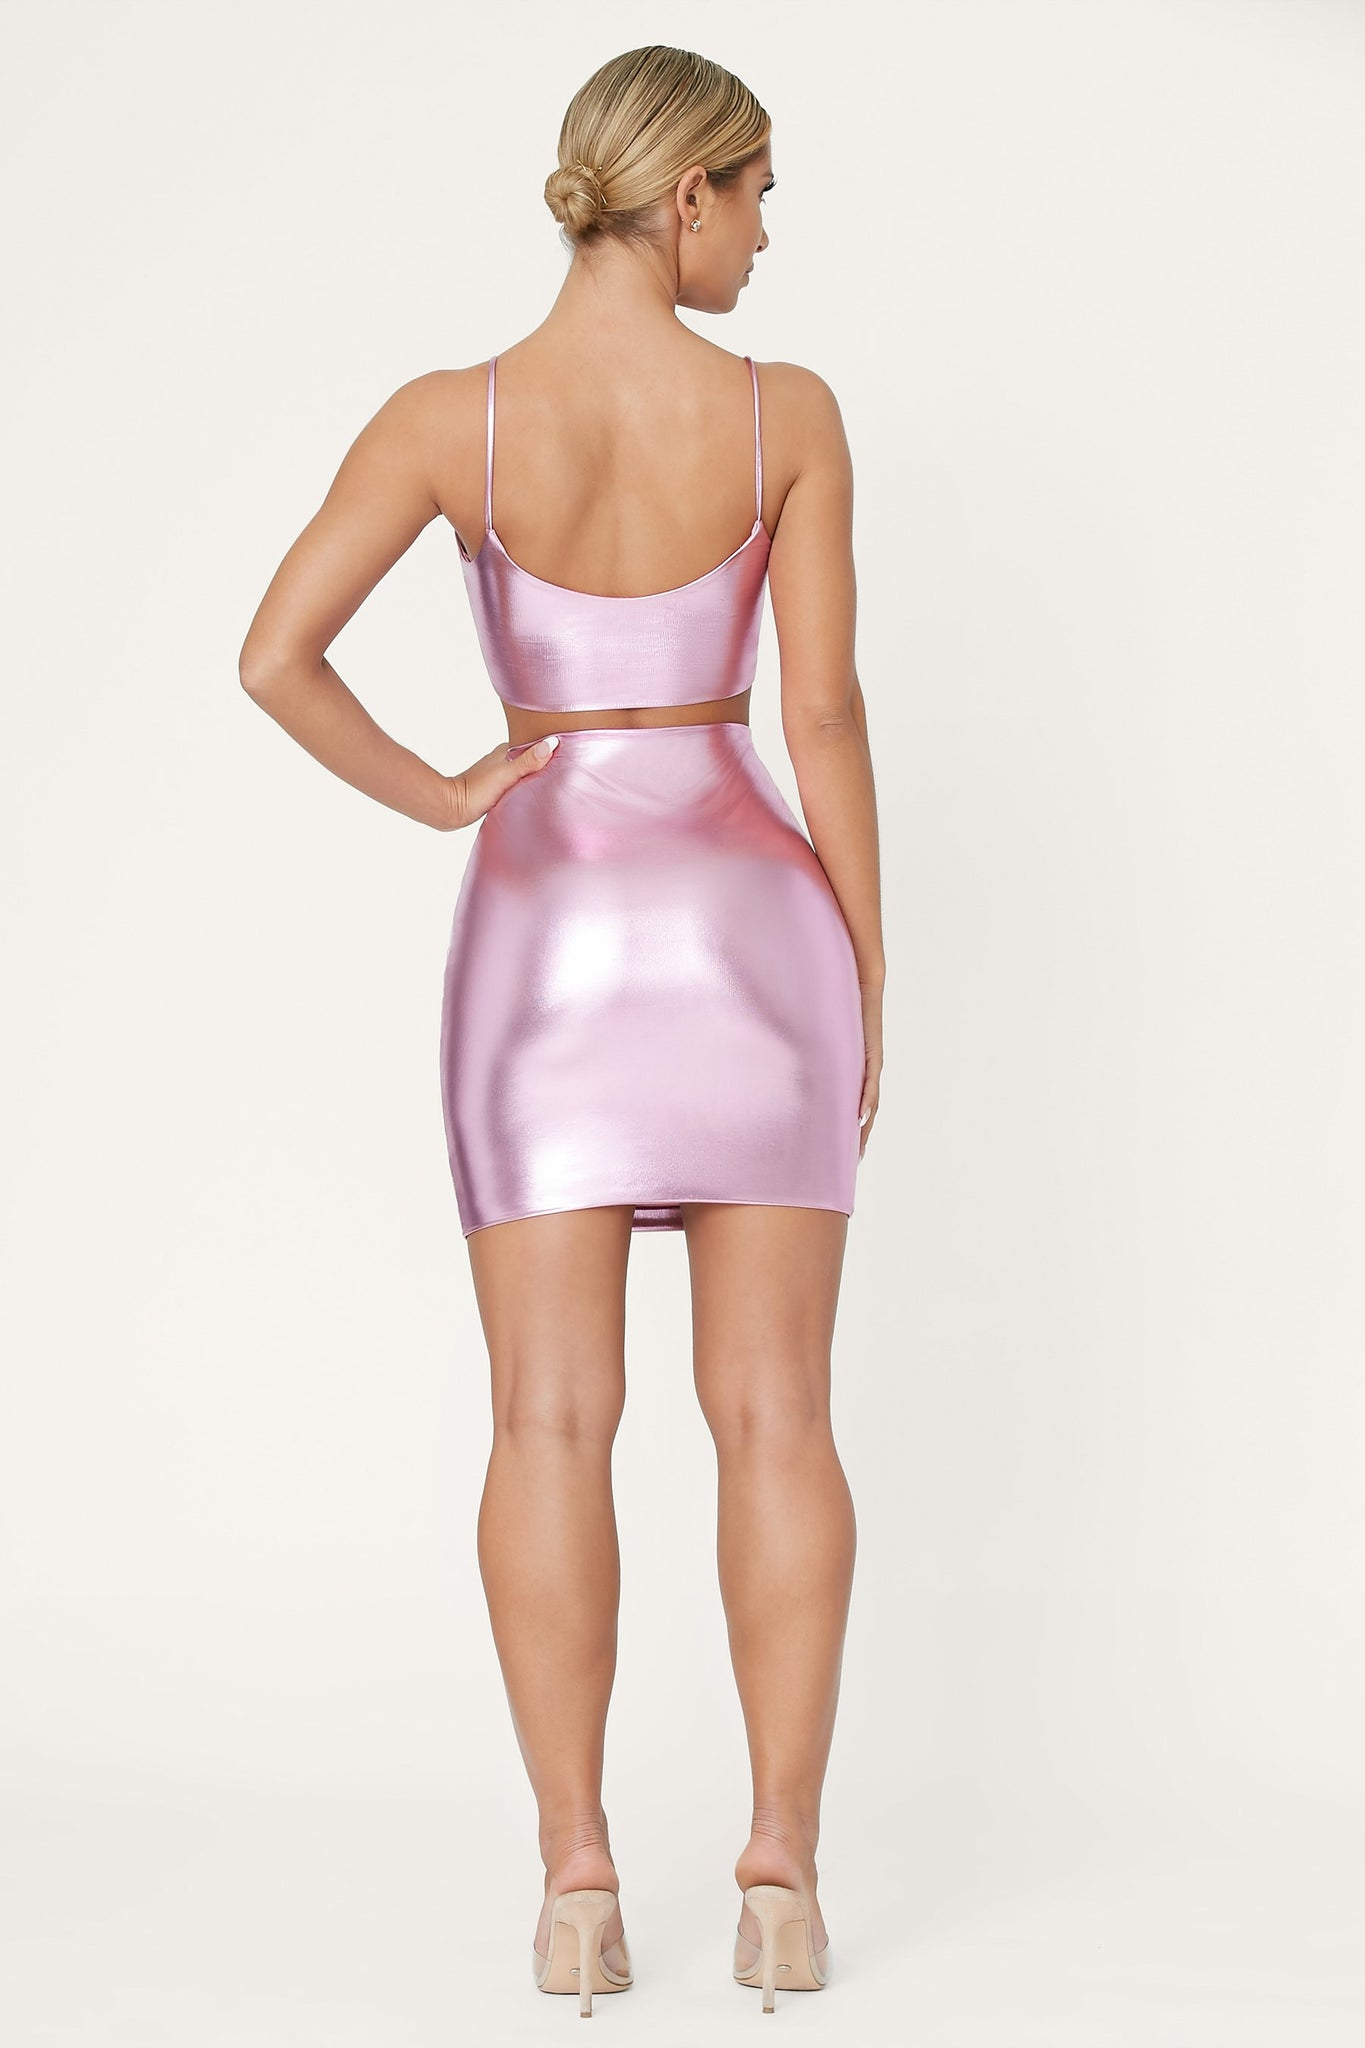 Zumi Metallic Mini Skirt - Pink - MESHKI